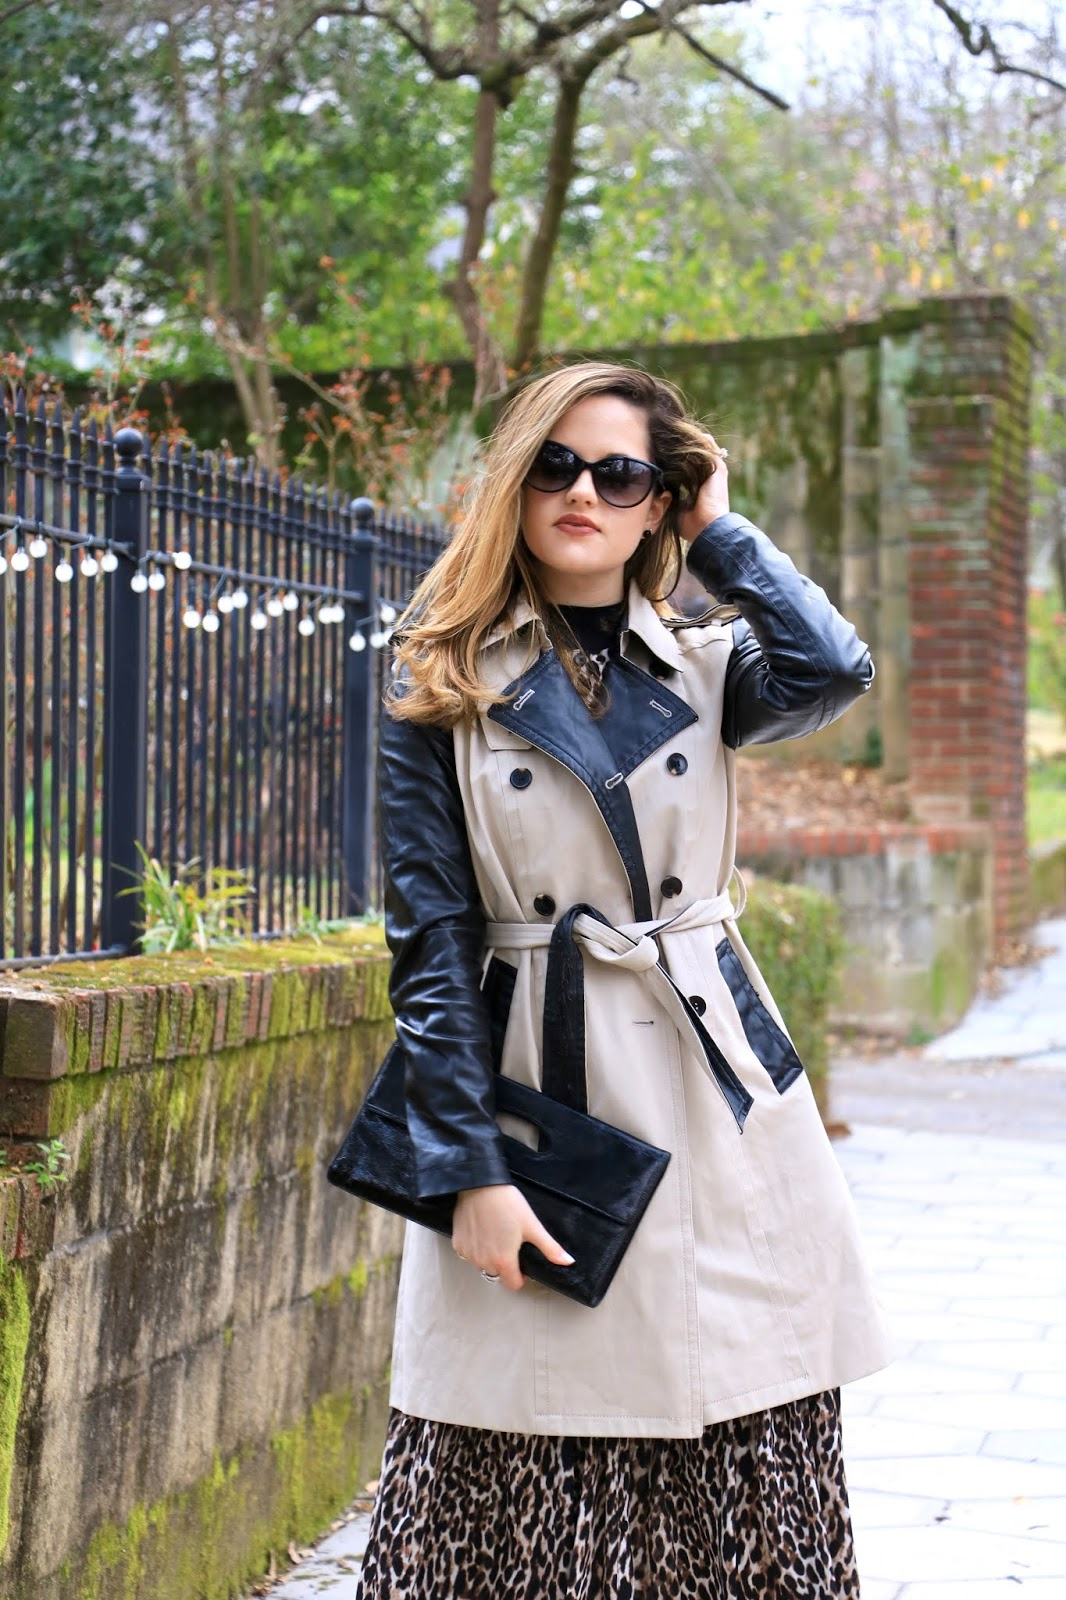 Nyc fashion blogger Kathleen Harper wearing a leopard dress and trench coat outfit.